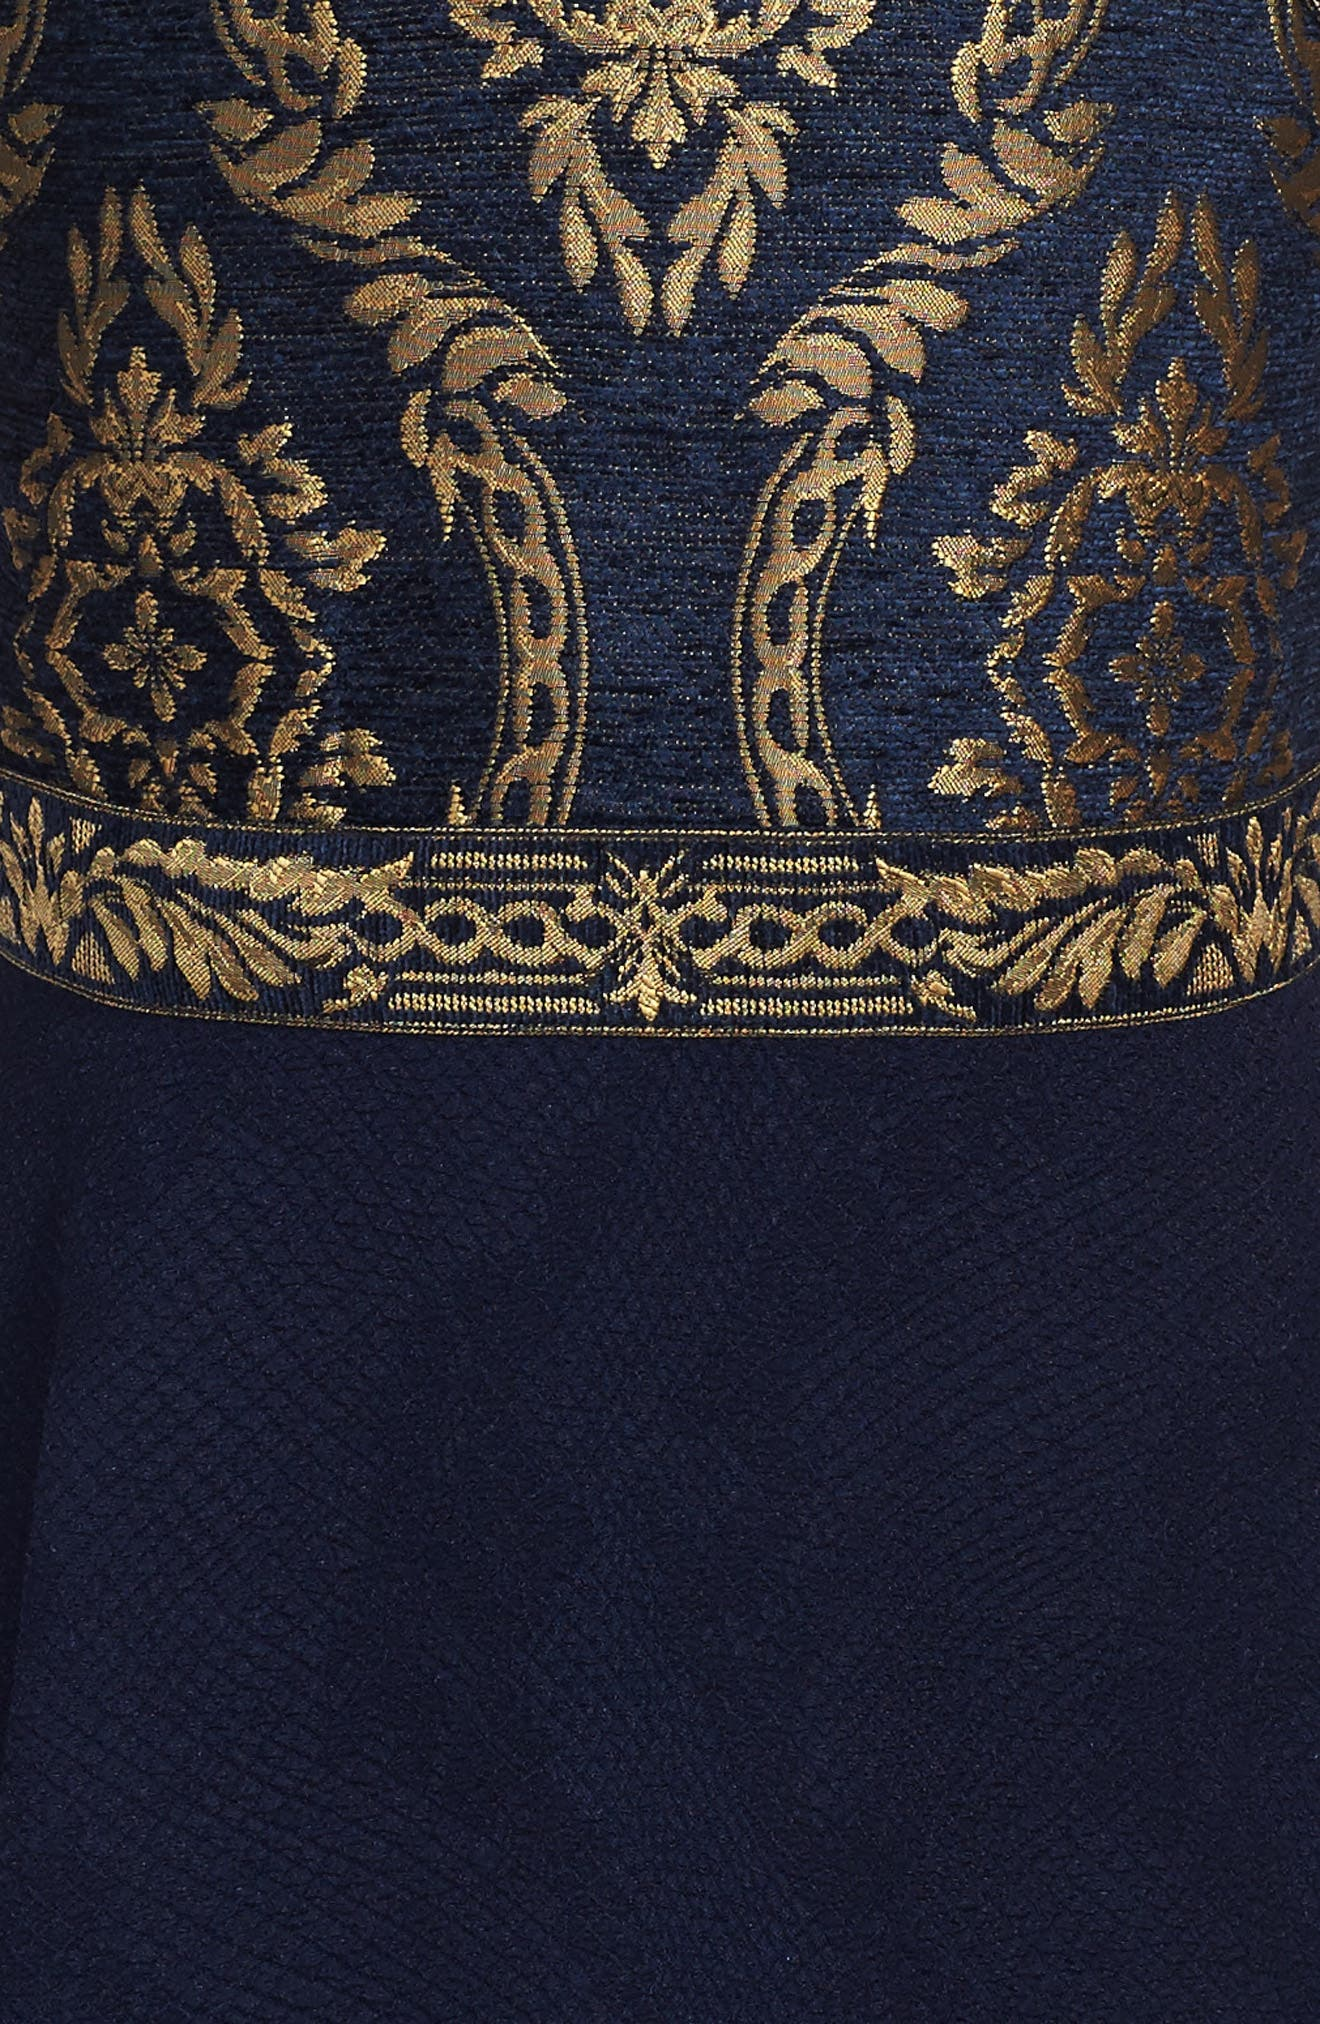 Brocade Embroidery Party Dress,                             Alternate thumbnail 3, color,                             Navy/ Gold